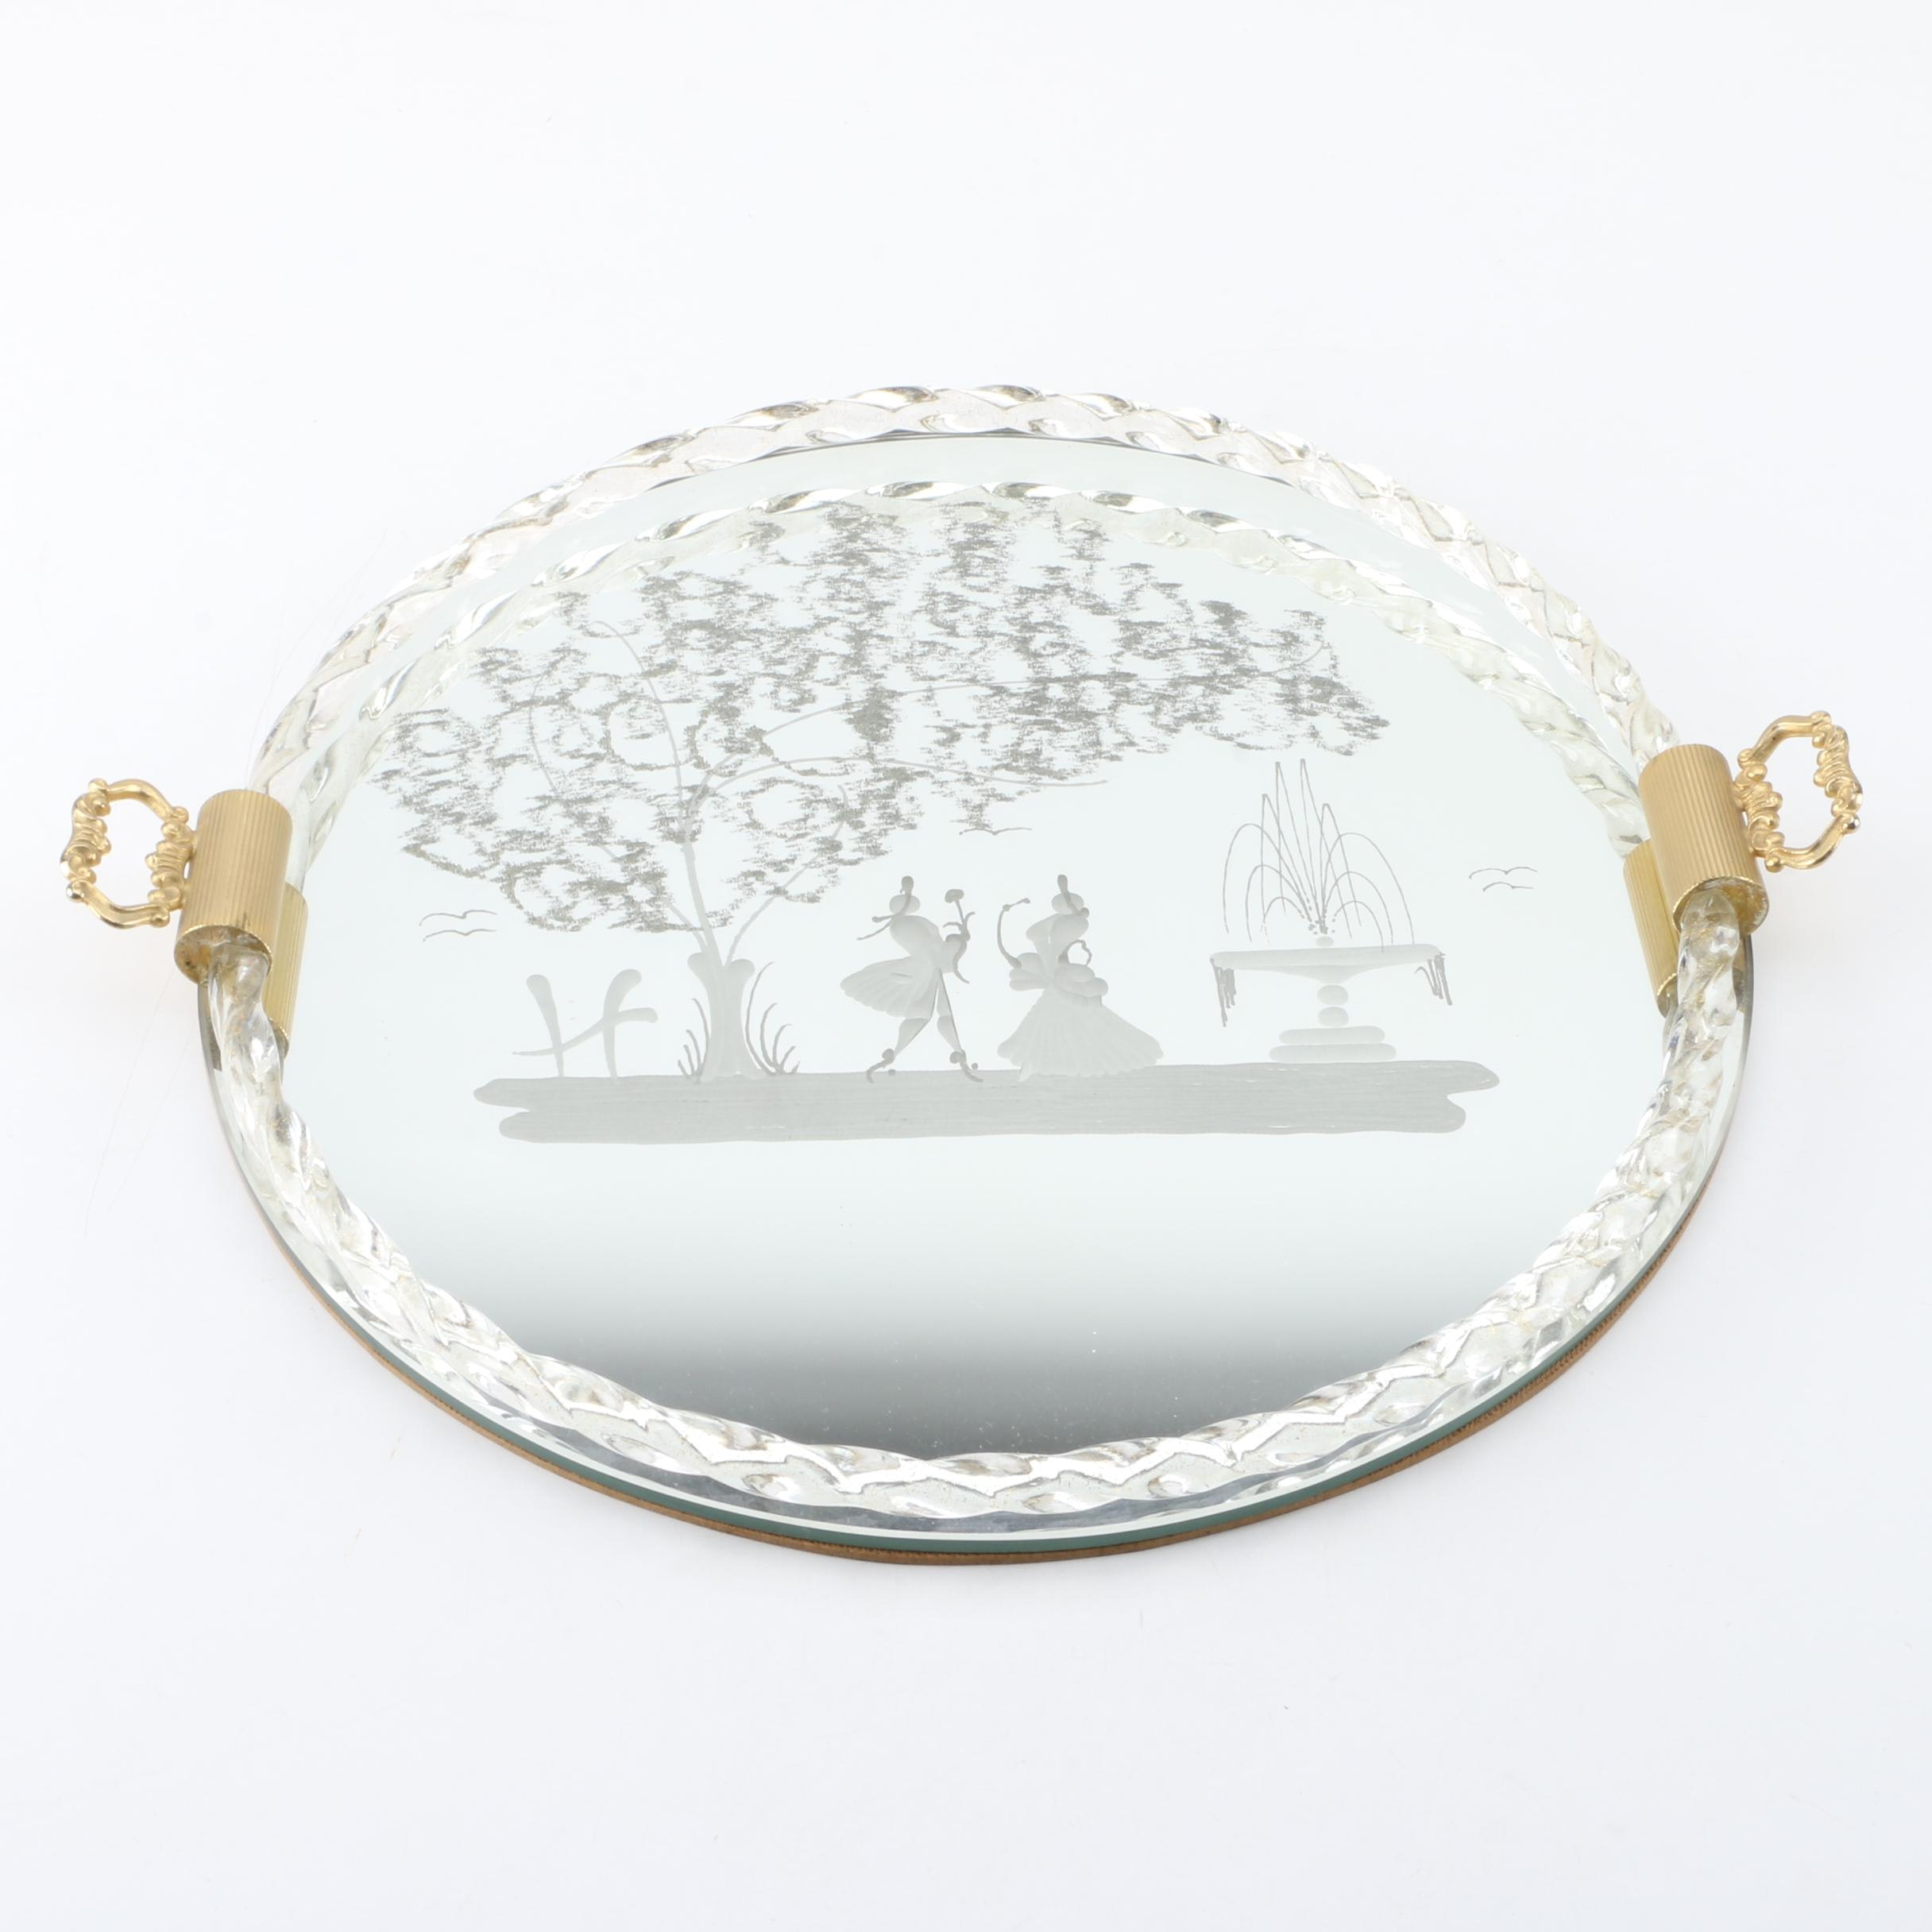 Mirrored Tray with Victorian Silhouette